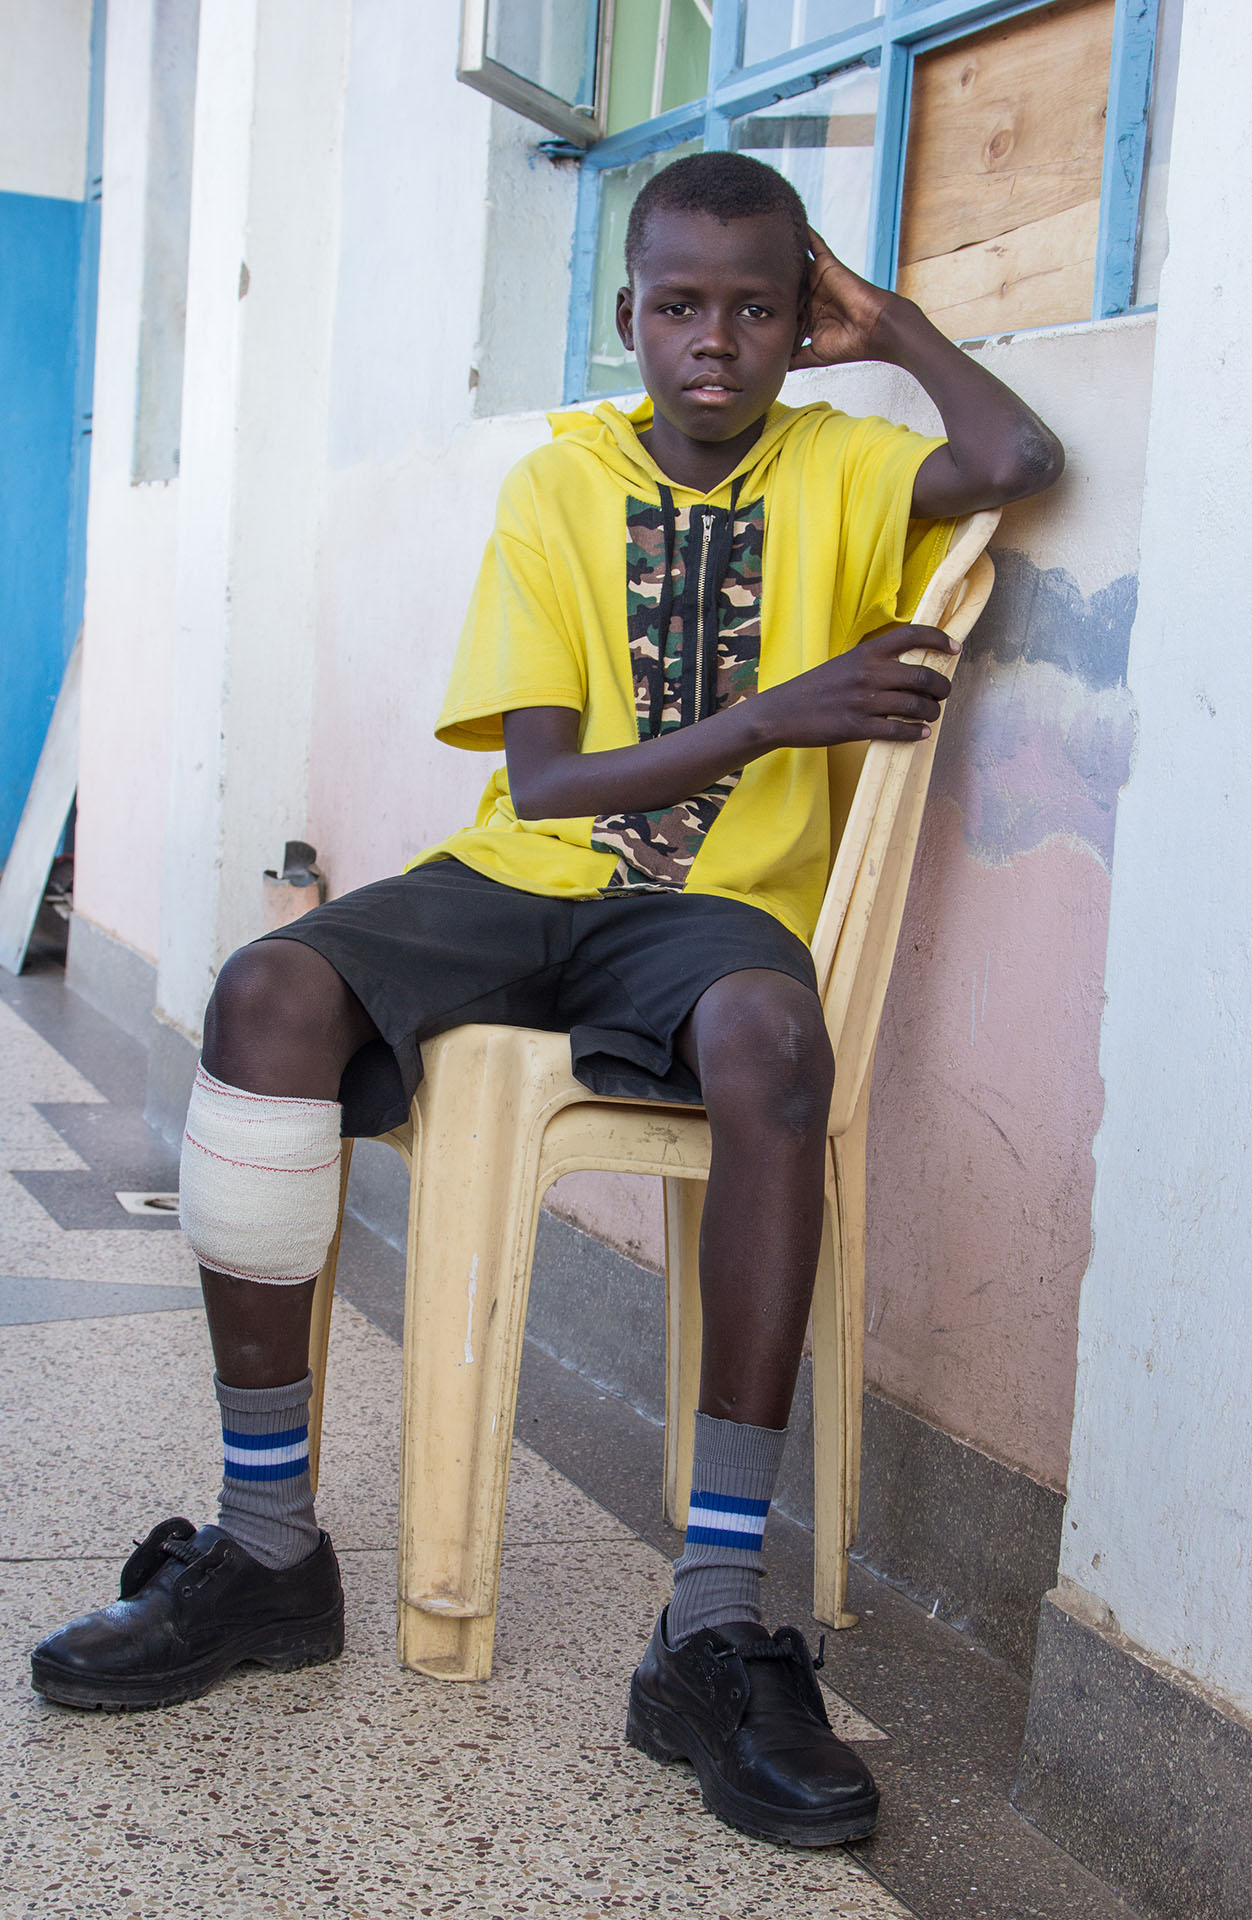 Leg injury threatens teen boy's life; here's how you can help!